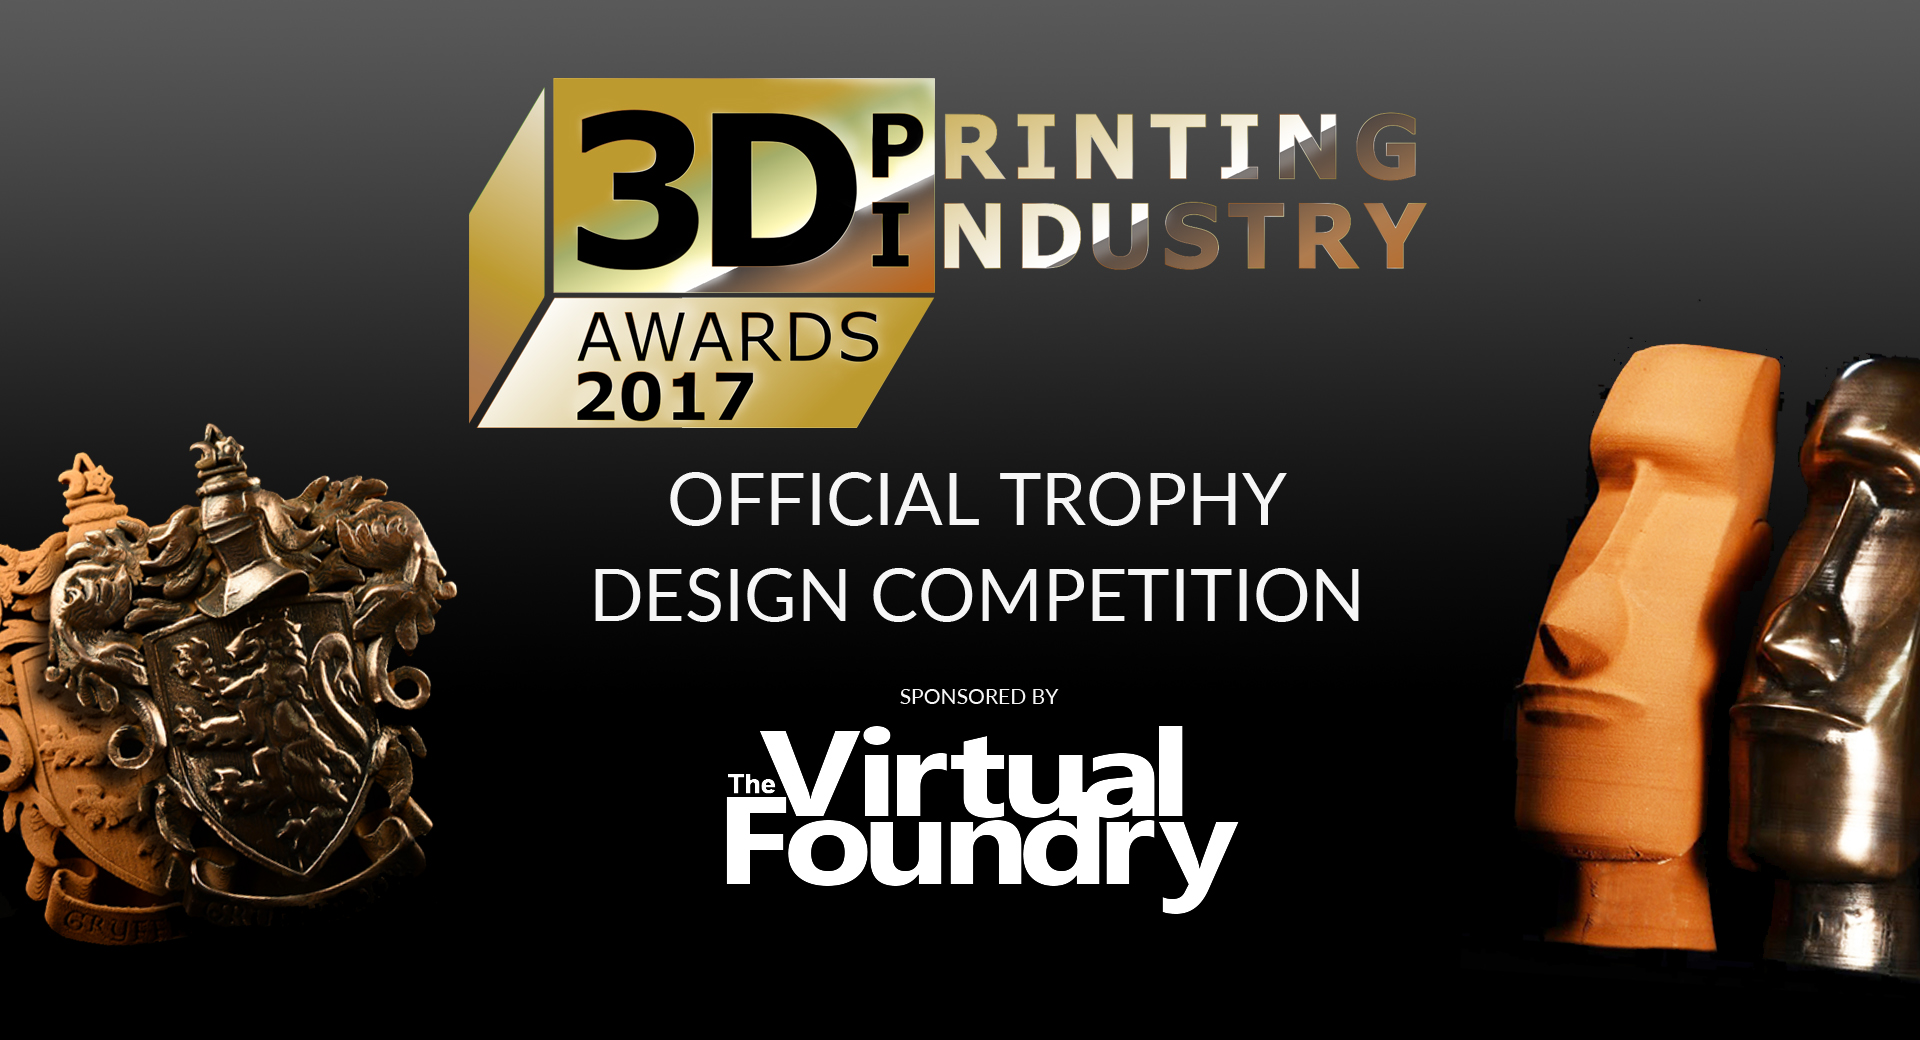 The 3D Printing Industry Awards design competition.